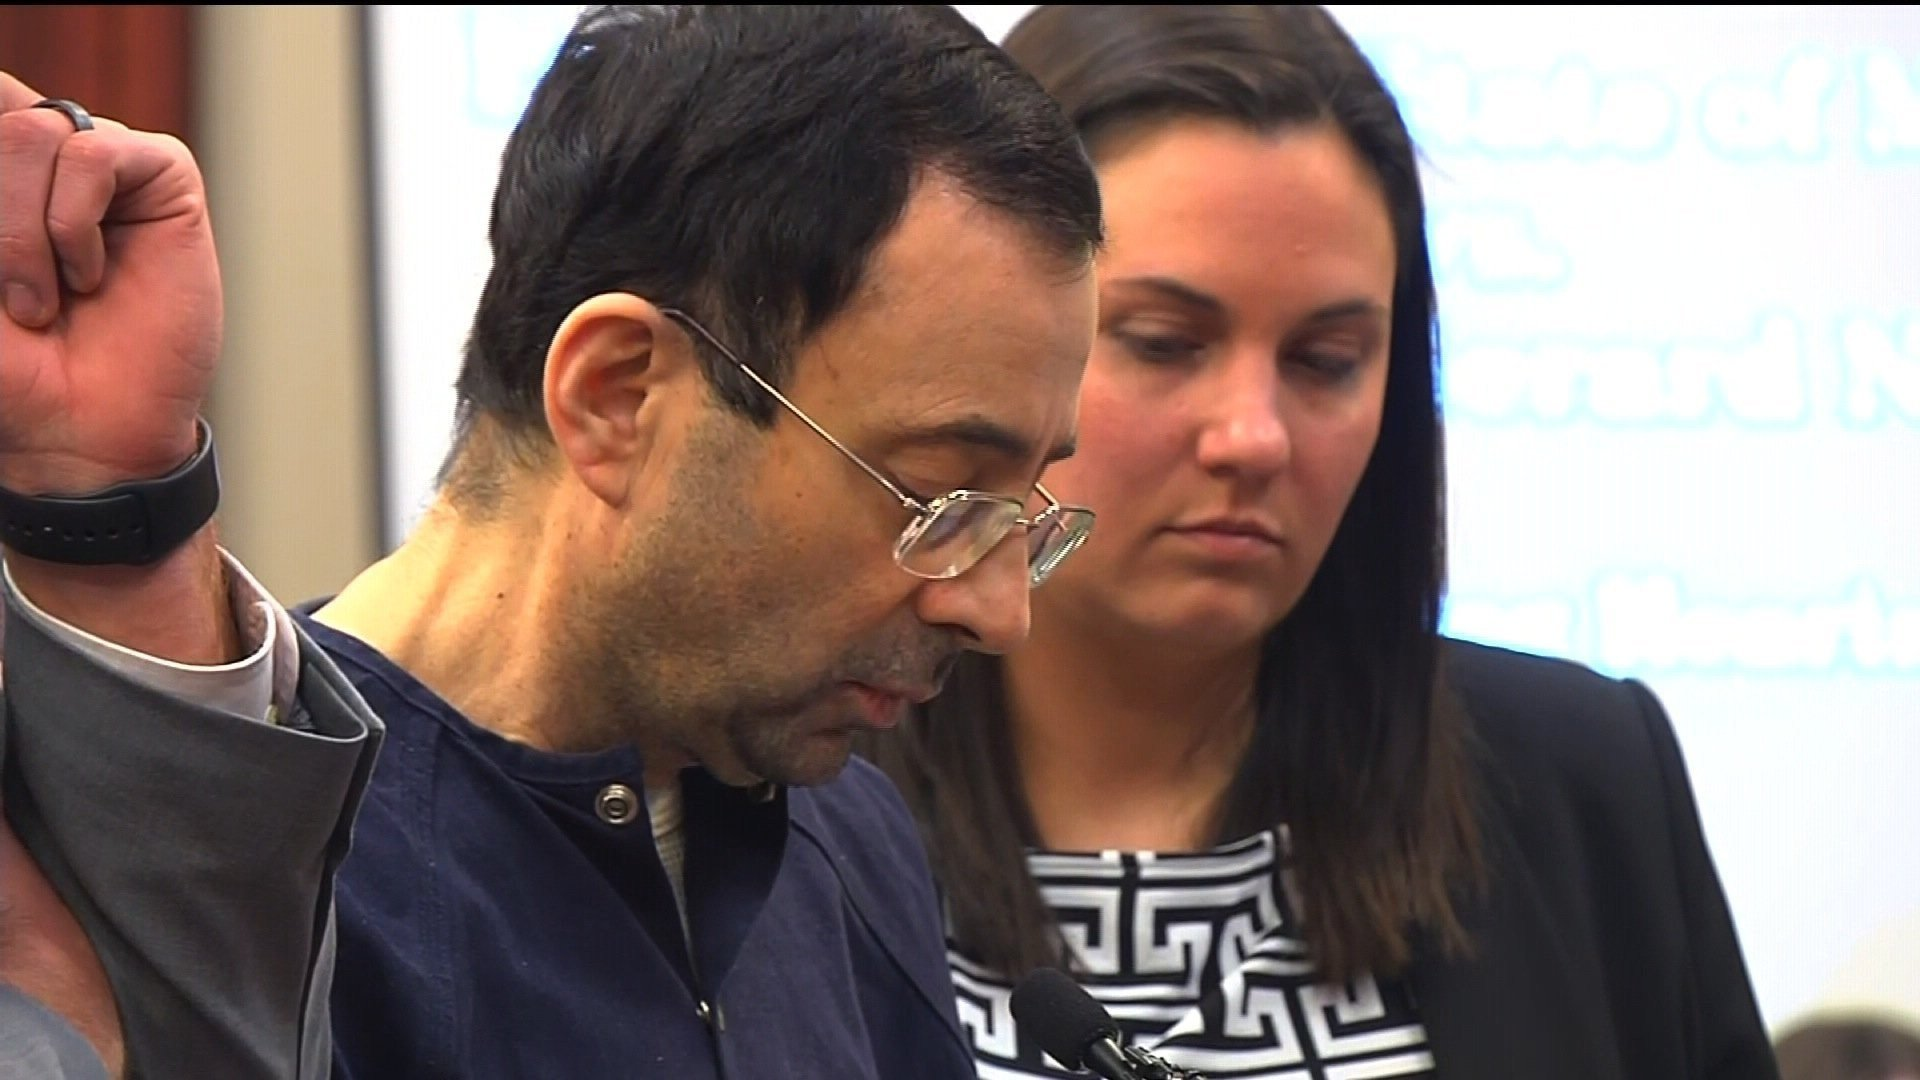 Father who attacked Larry Nassar in courtroom will not face any punishment